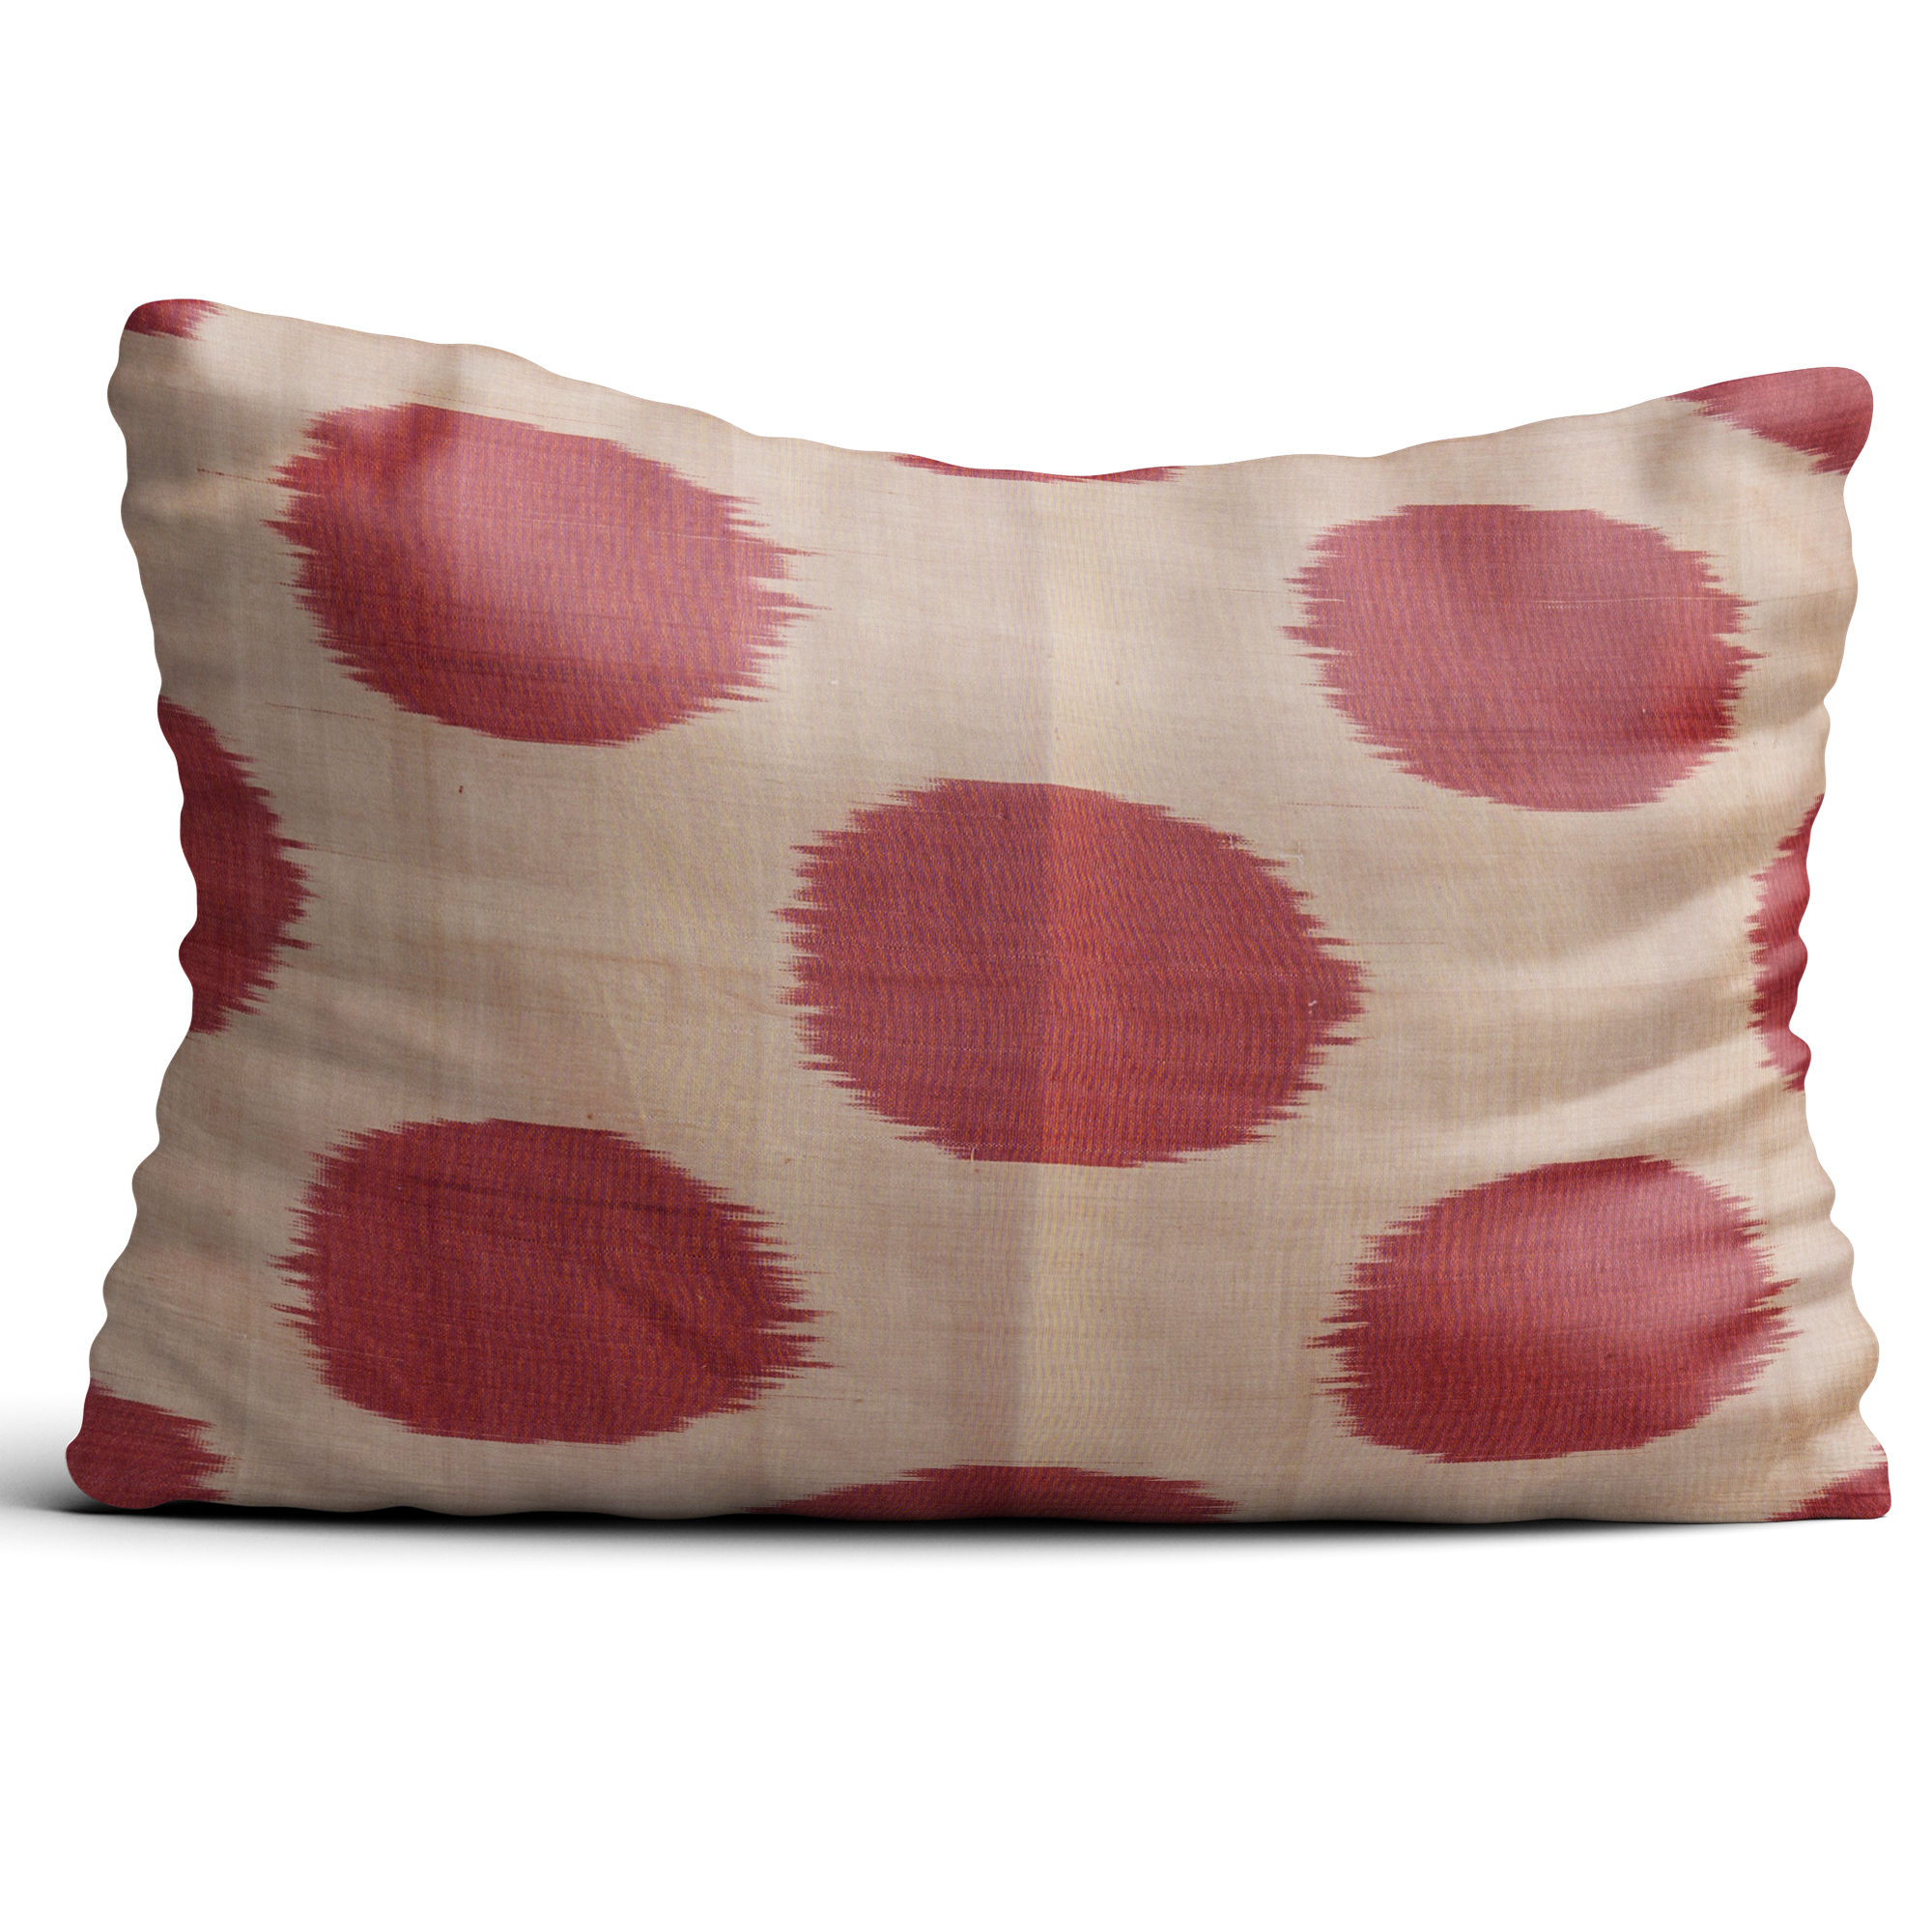 2623-silk-ikat-pillow